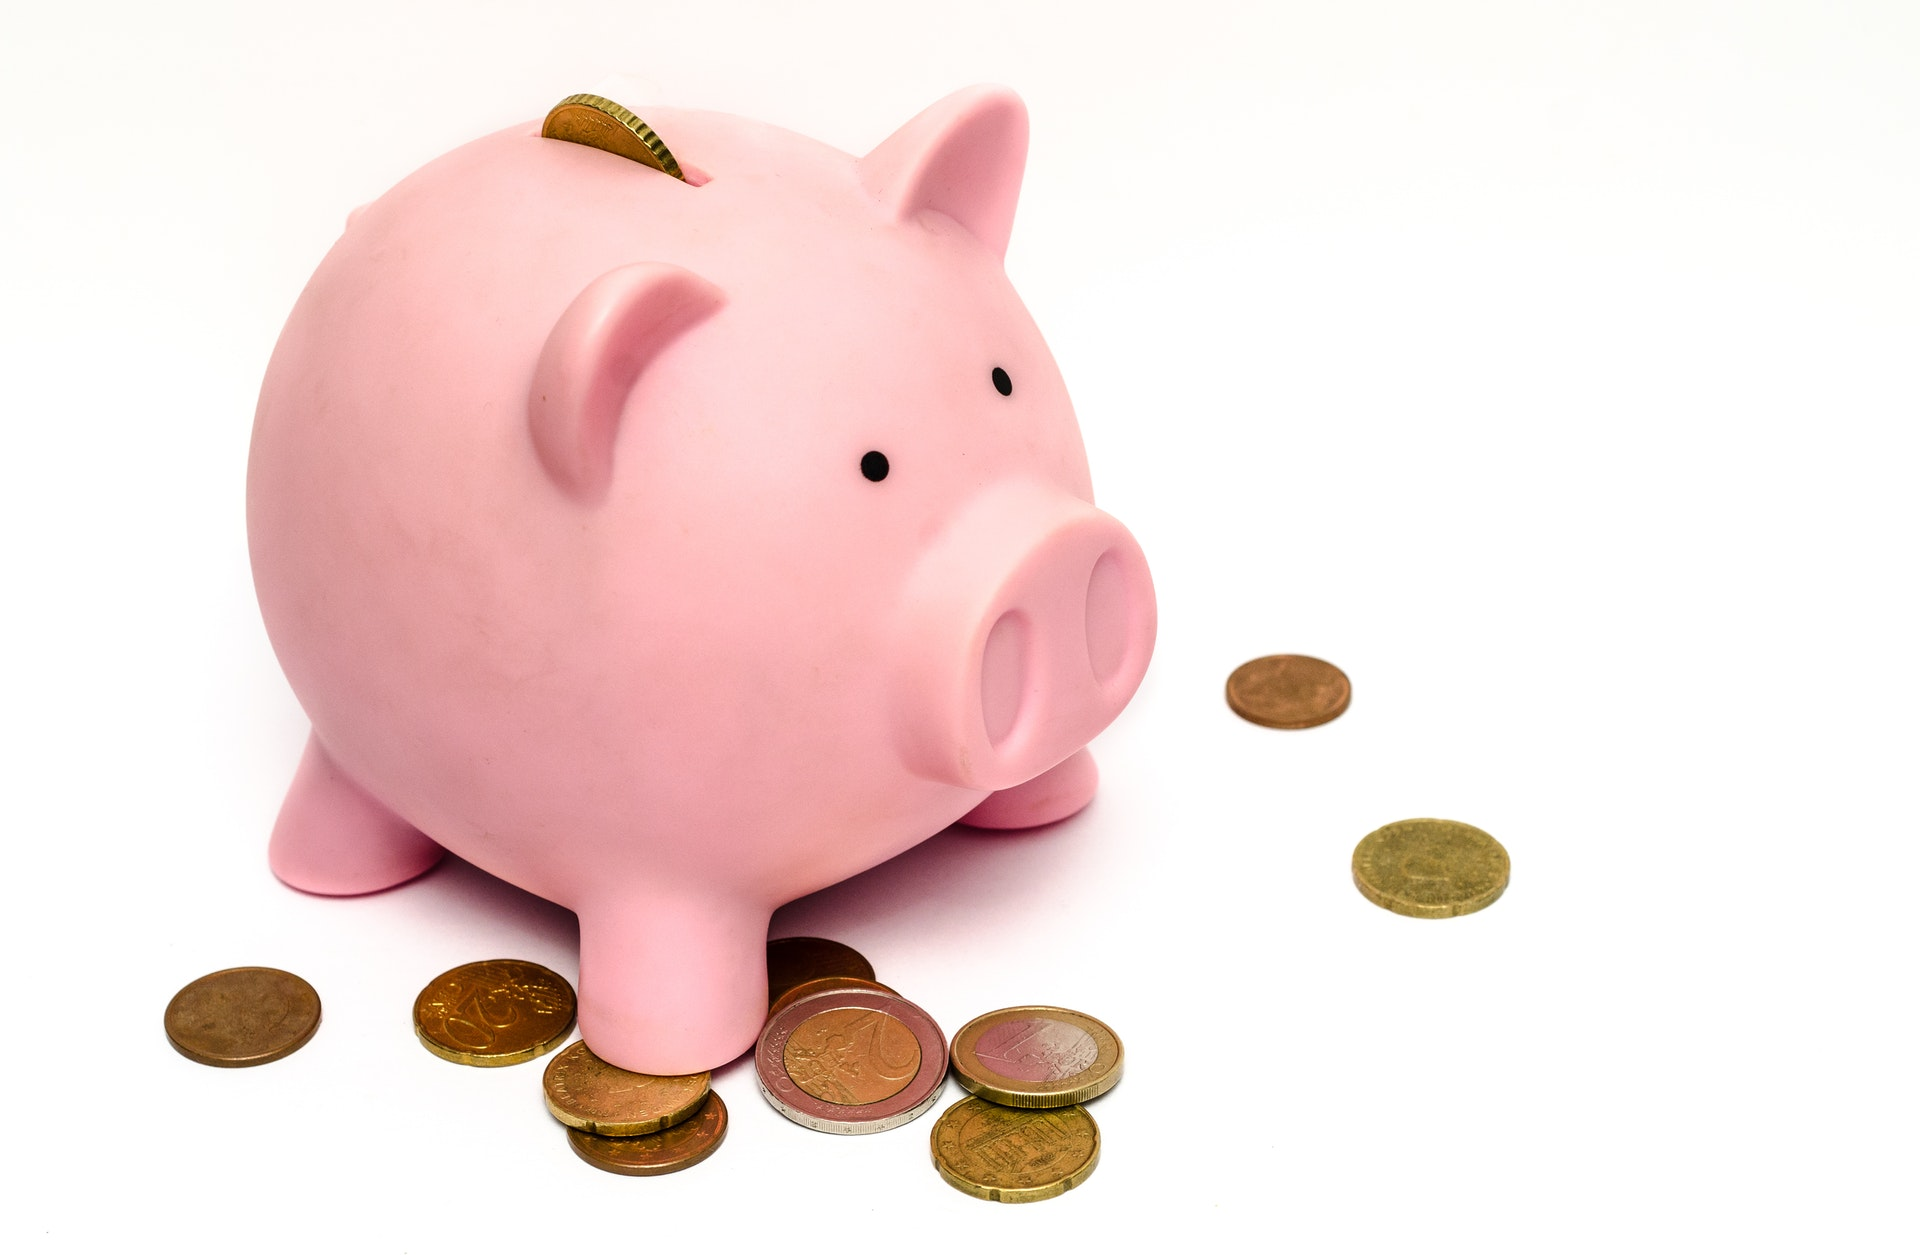 An image of a piggy bank with coins around it